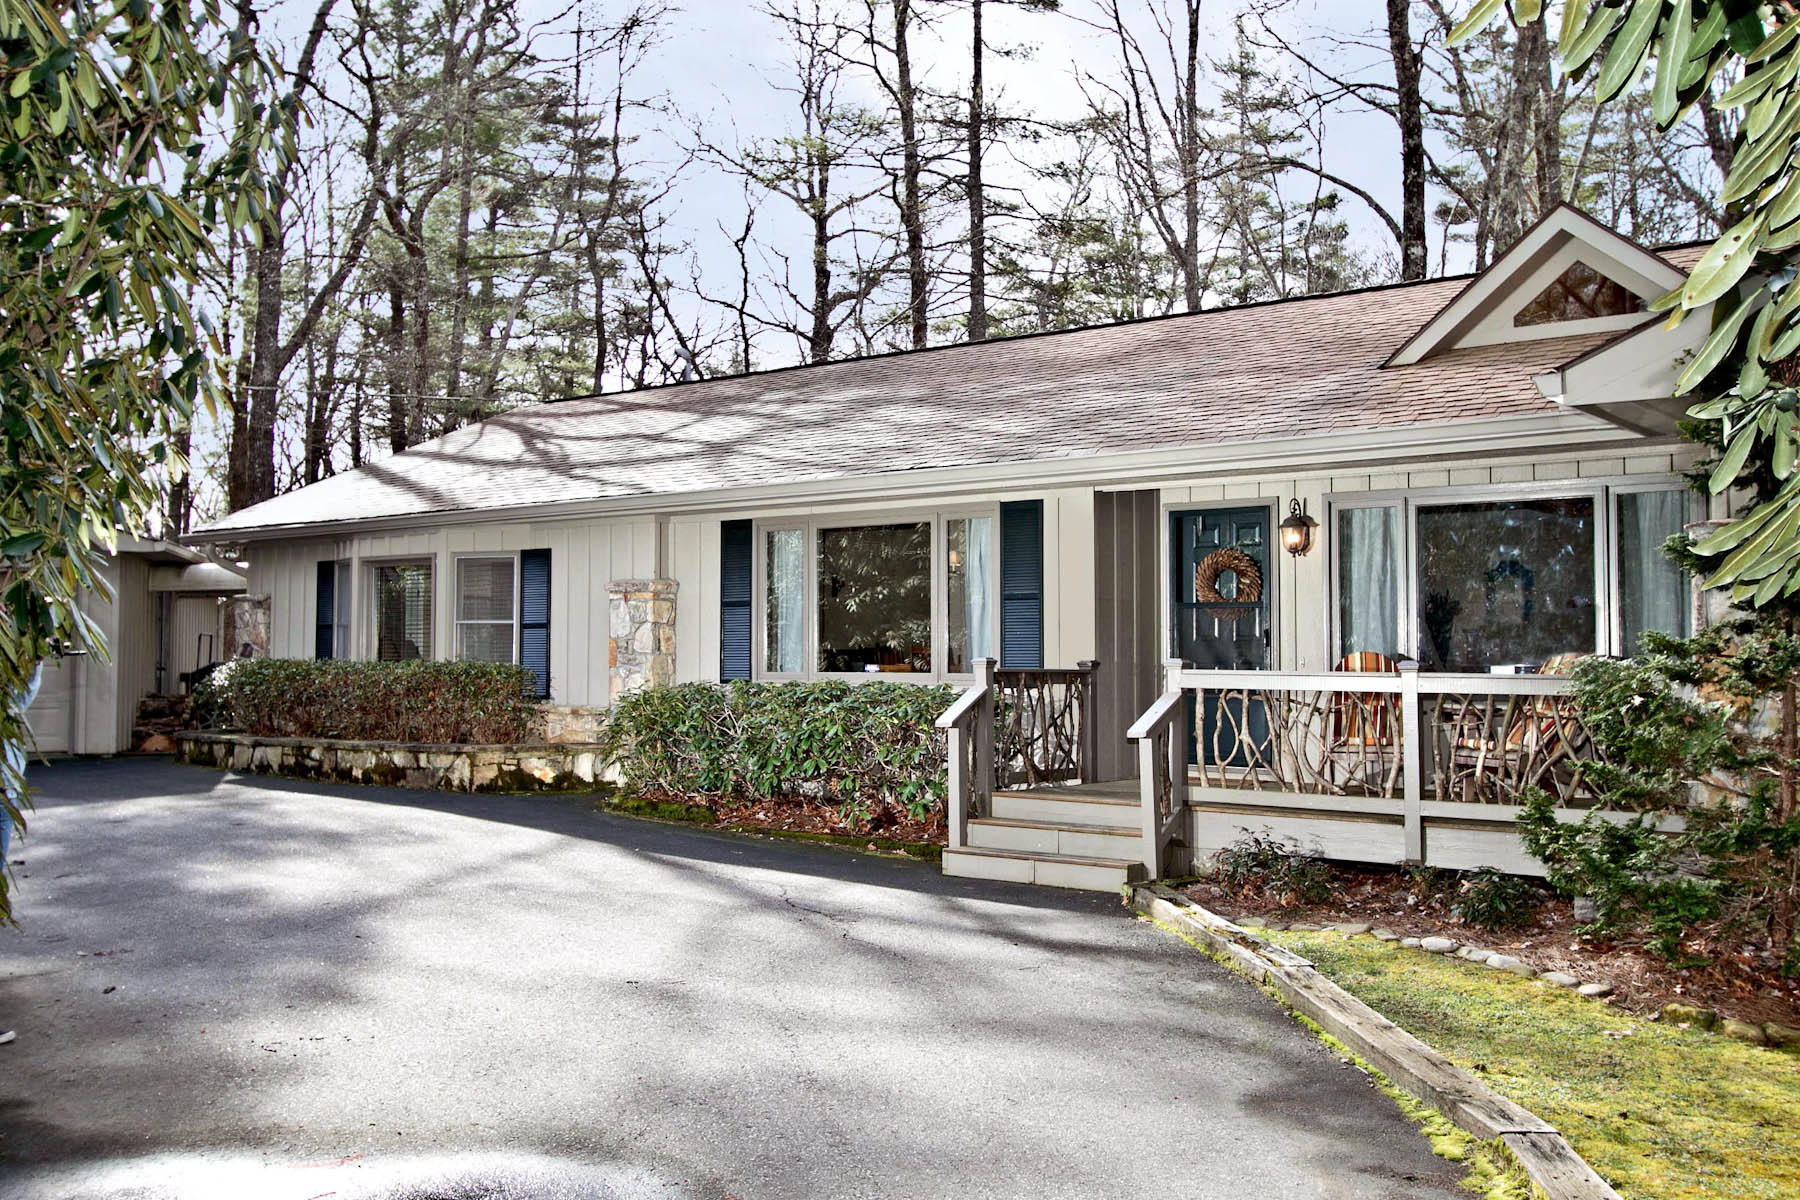 Single Family Home for Sale at 371 Dixon Drive Highlands, North Carolina, 28741 United States